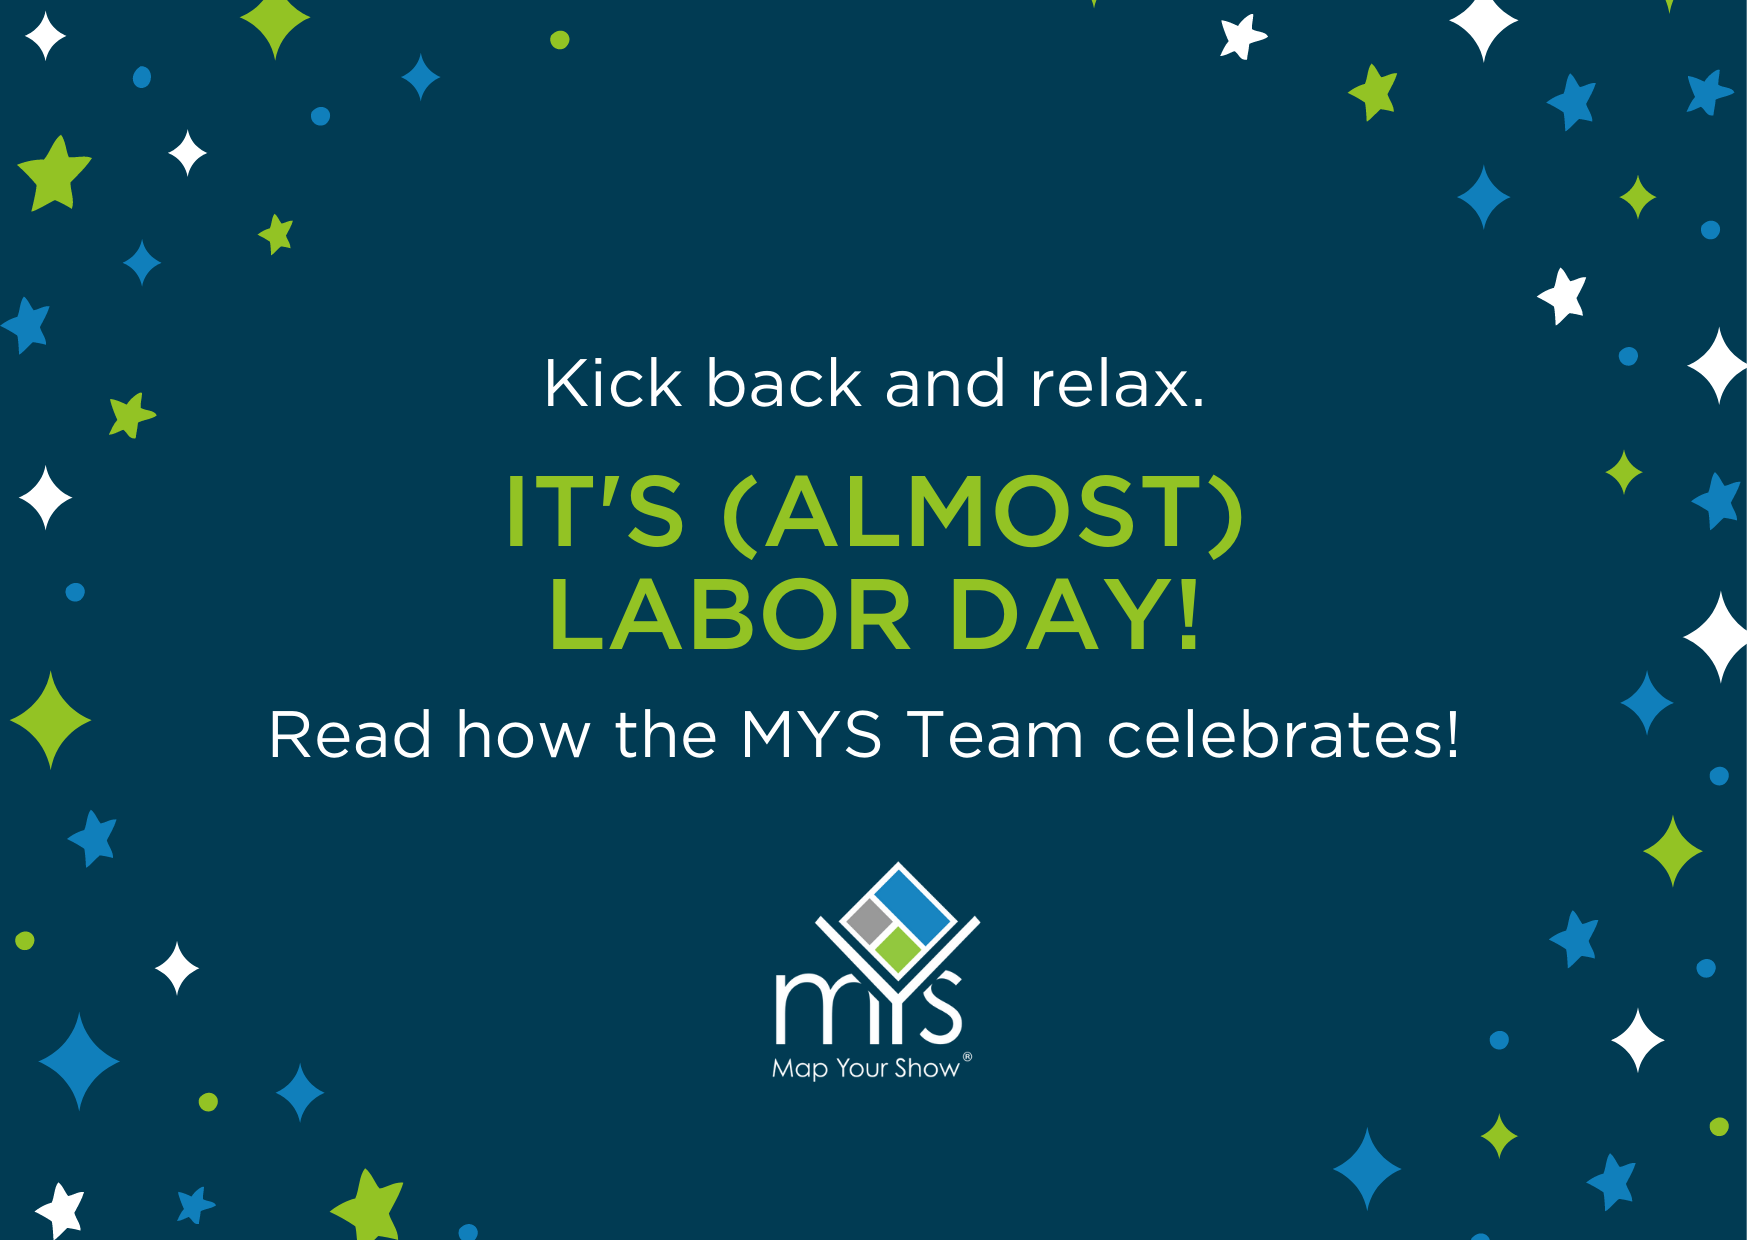 Celebrate Labor Day the MYS Way!